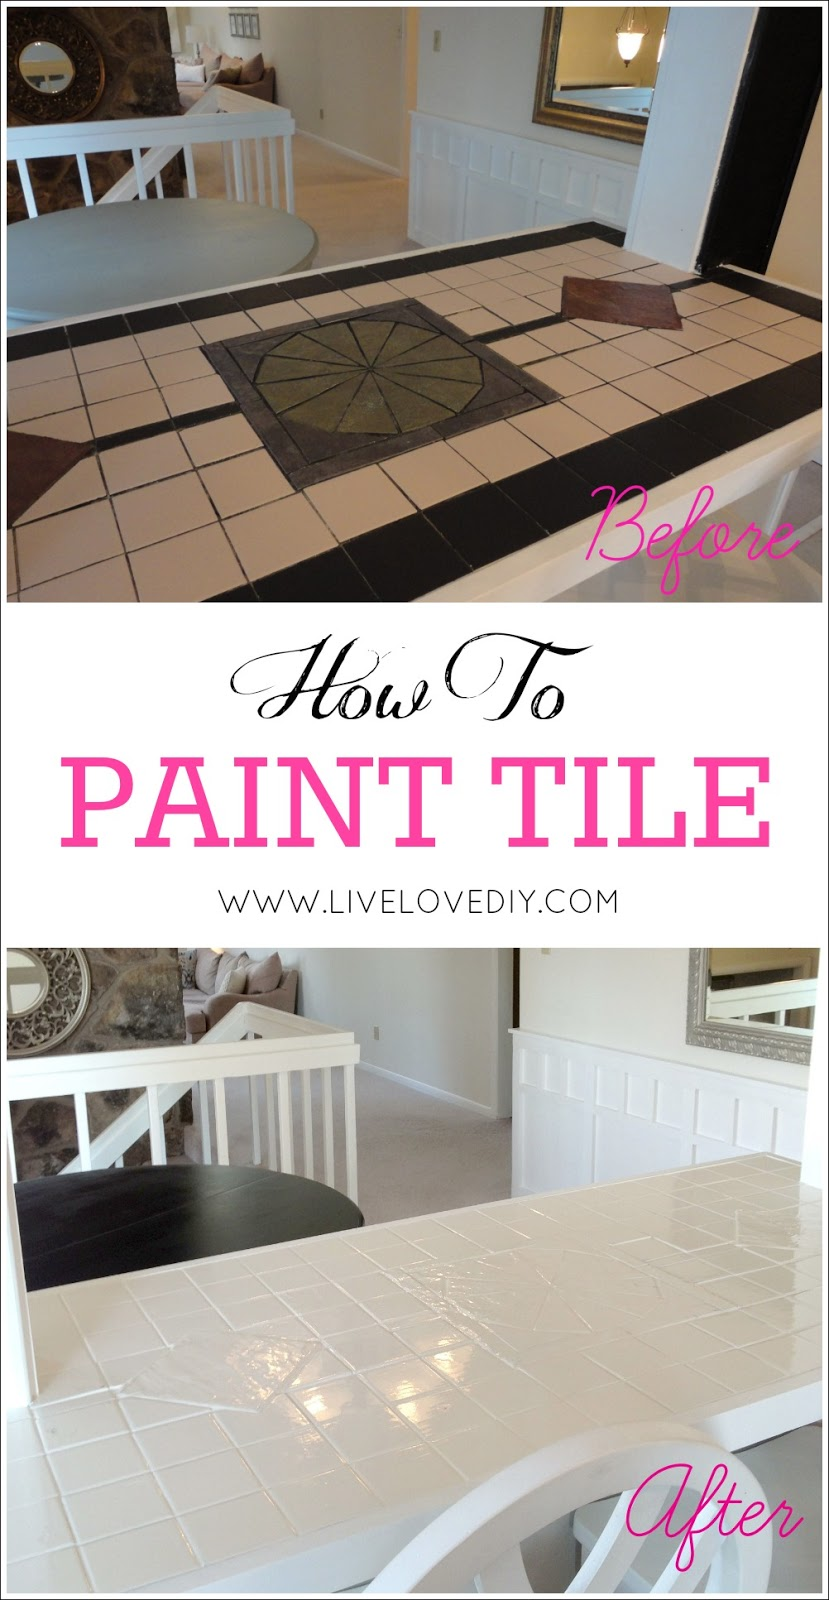 Livelovediy how to paint tile countertops how to paint tile countertops this is so great for outdated kitchens and bathrooms dailygadgetfo Image collections